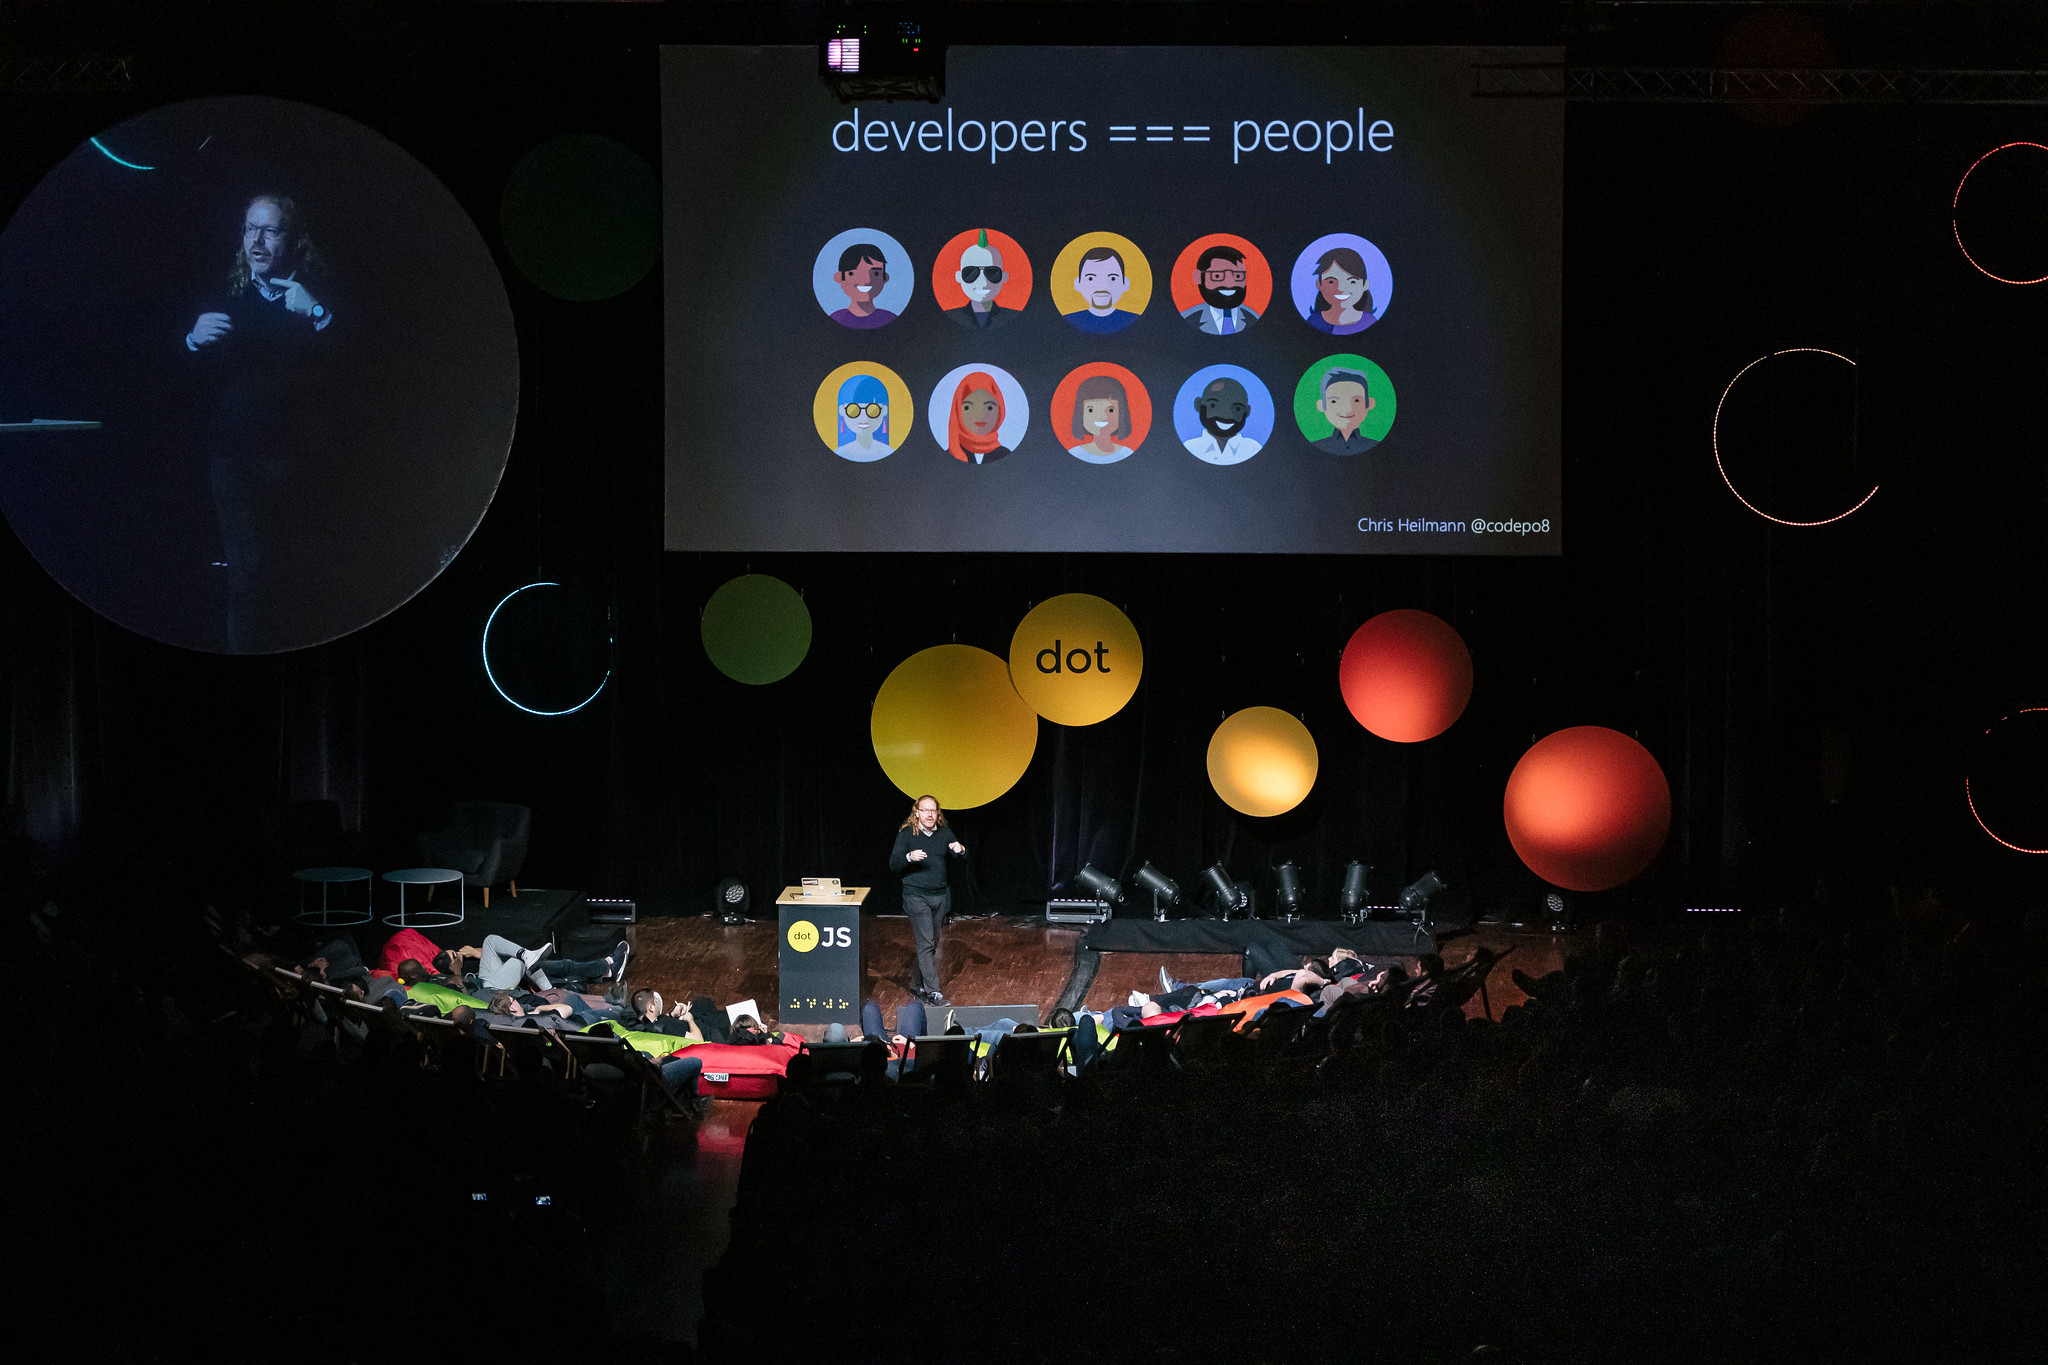 Chris Heilmann presenting at dotjs 2019 with a slide saying developers are people